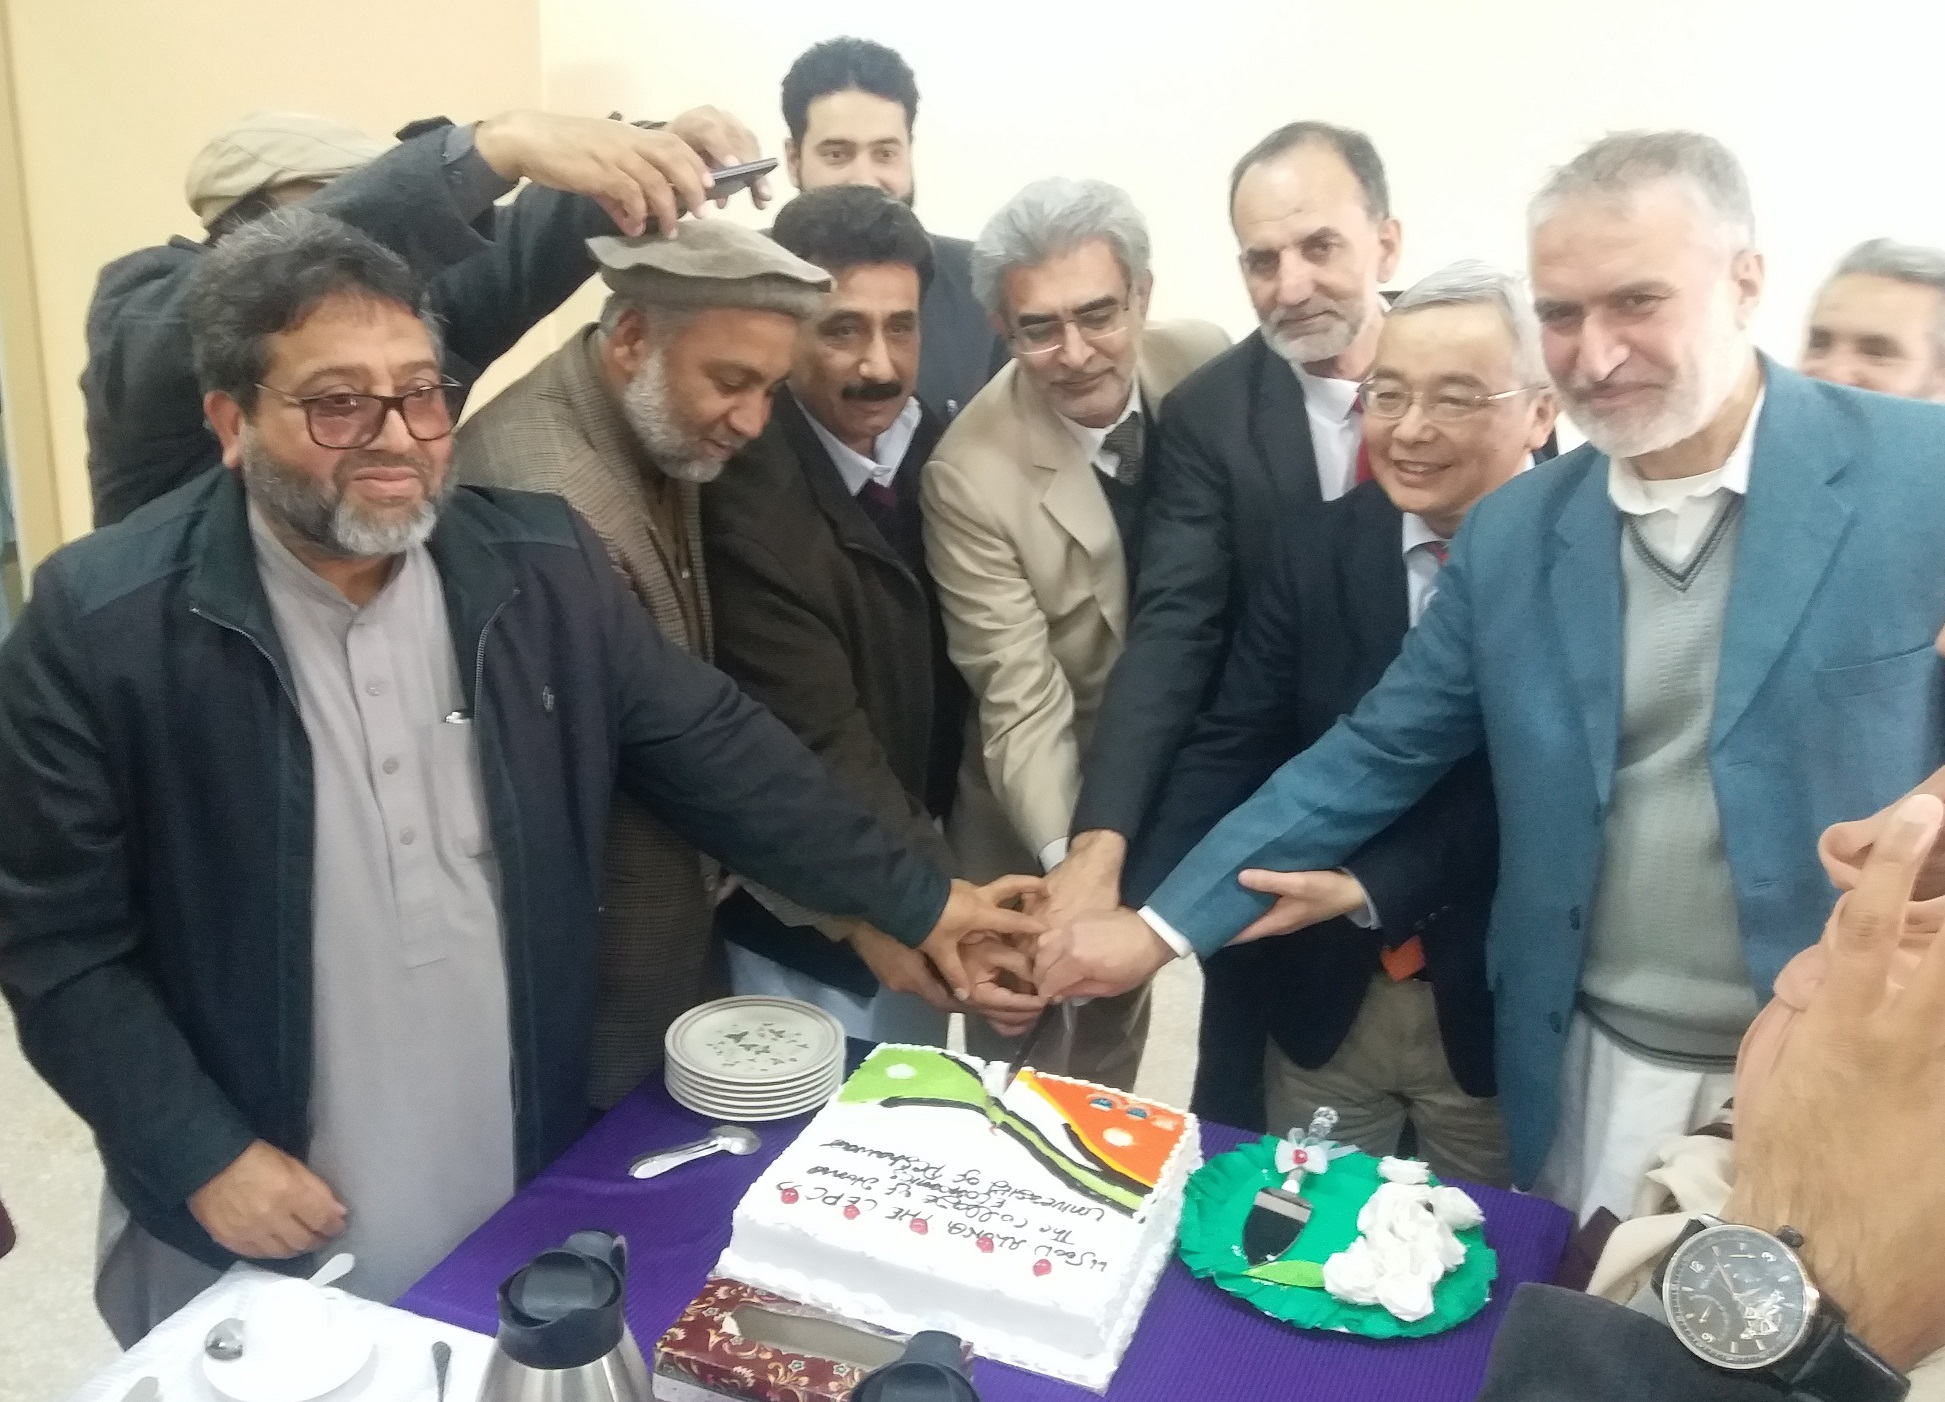 CAKE CUTTING CEREMONY IN CONFERENCE